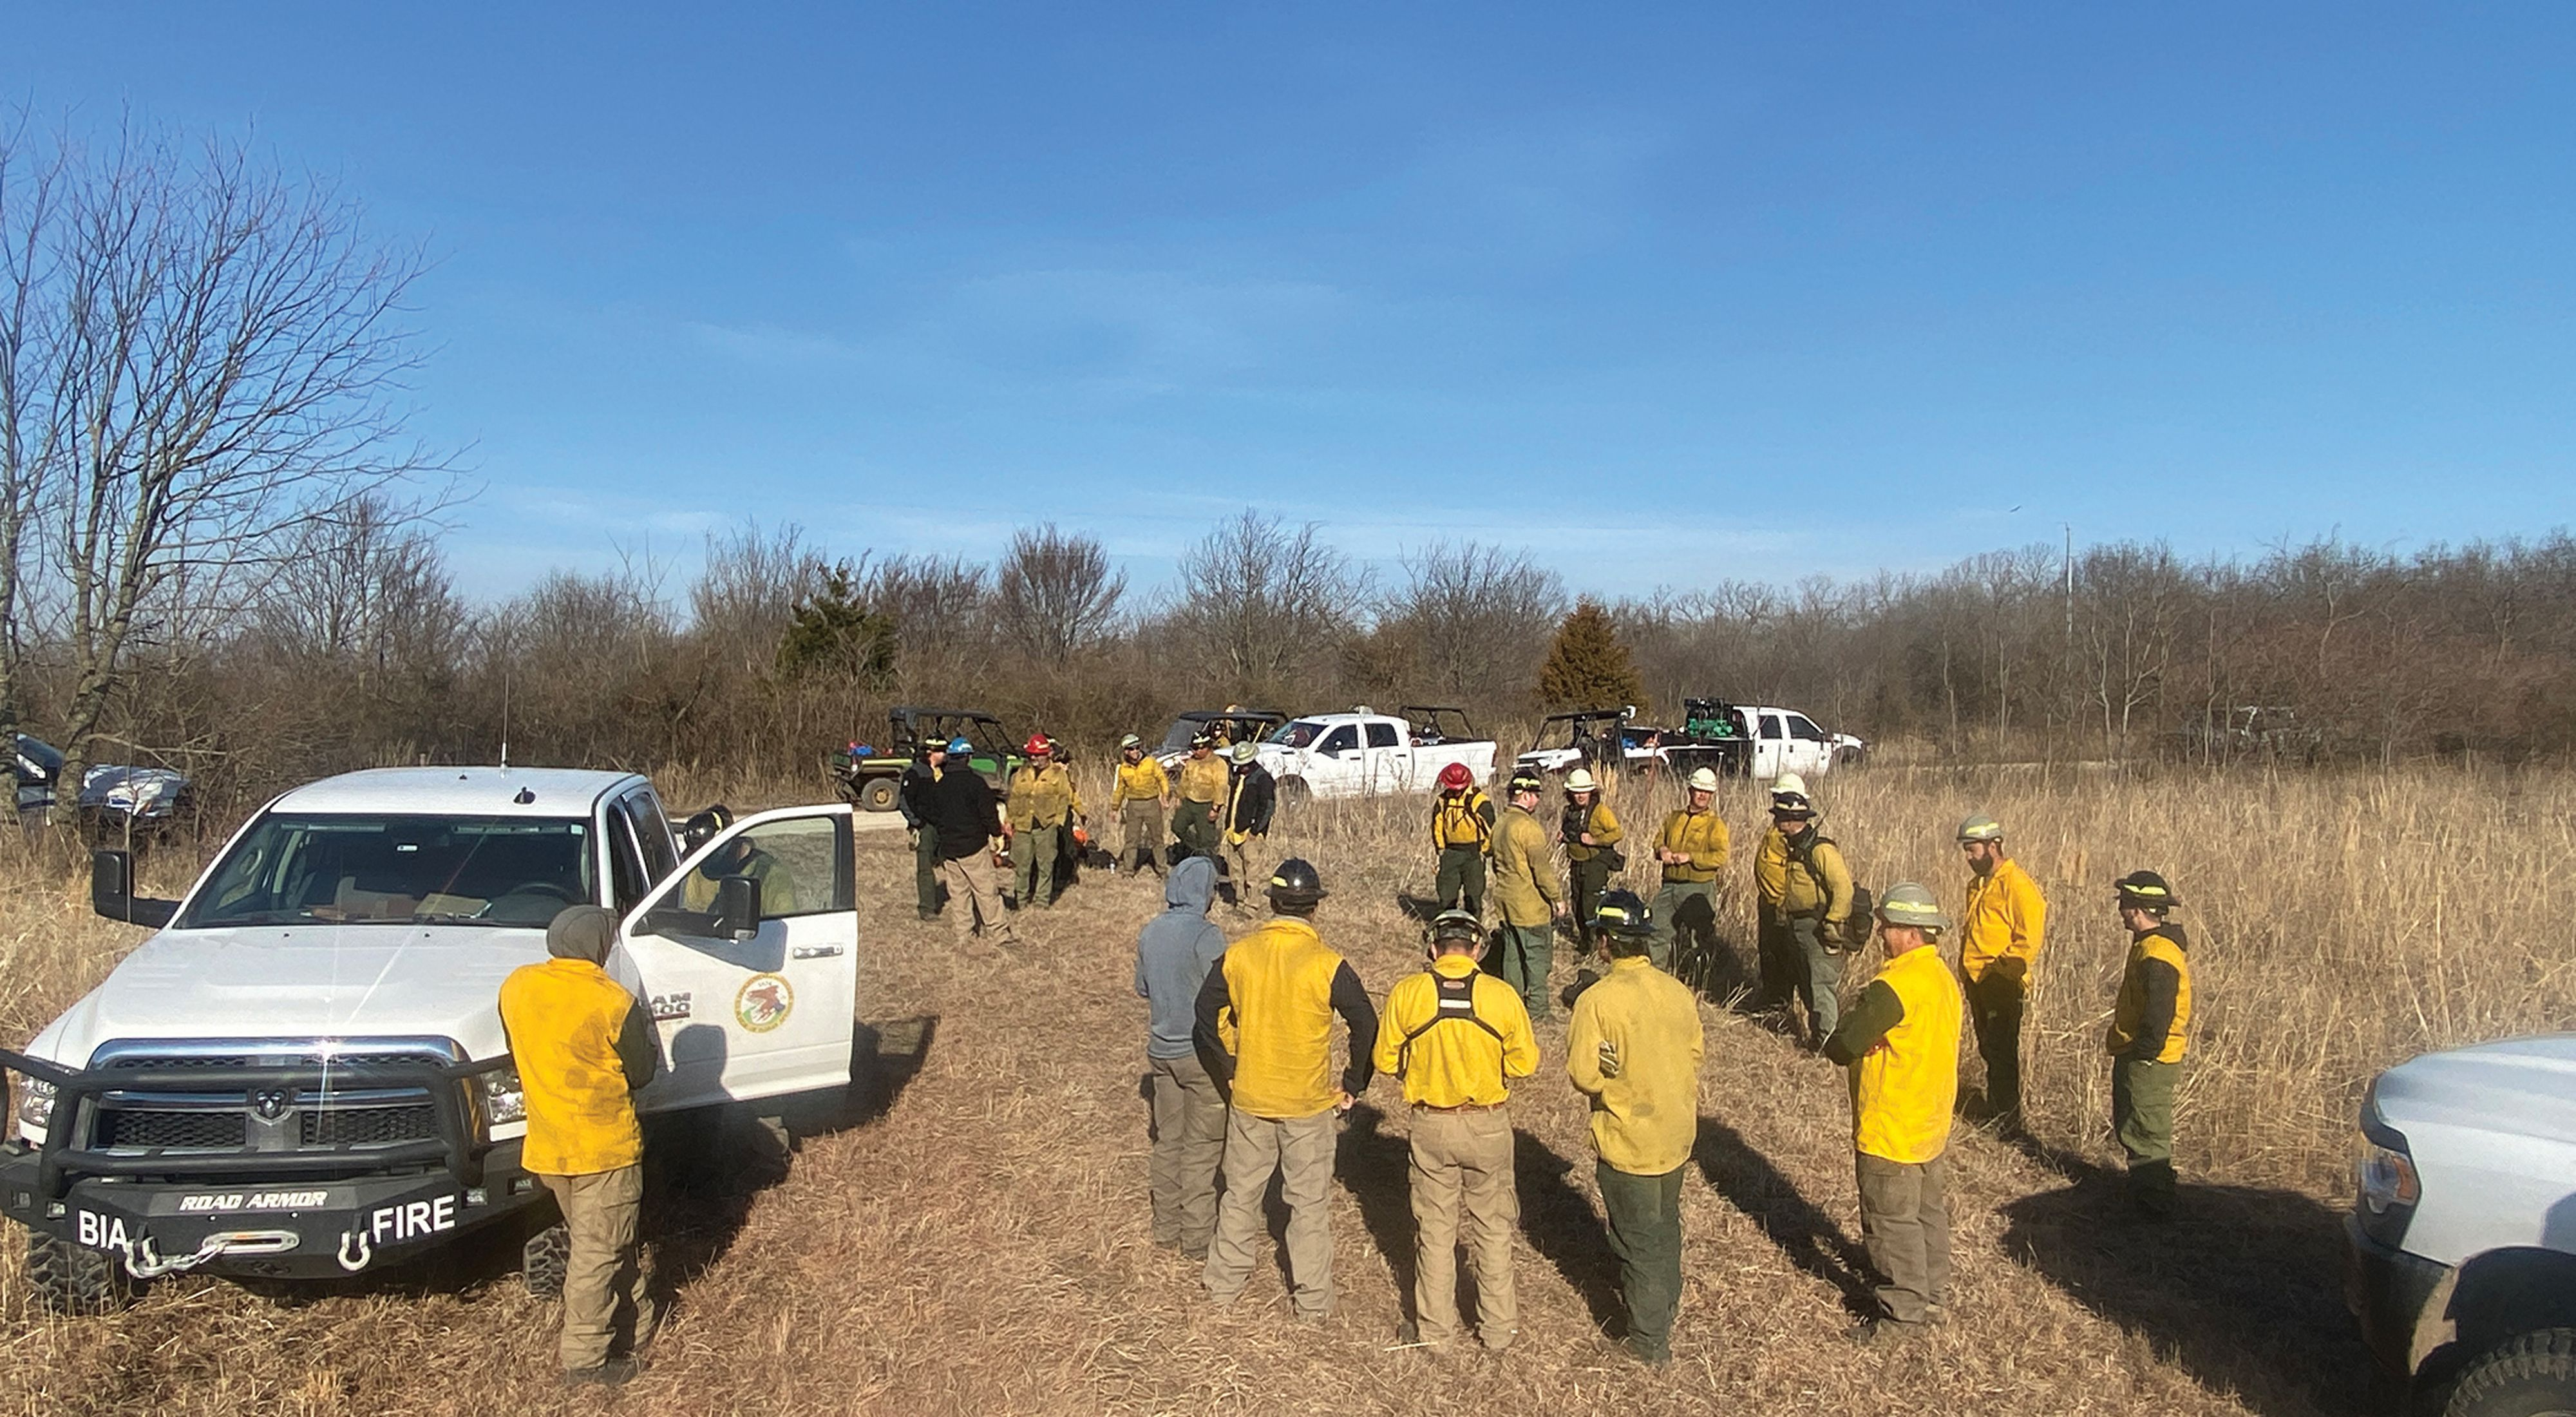 Group of fire practitioners preparing to conduct a controlled burn.